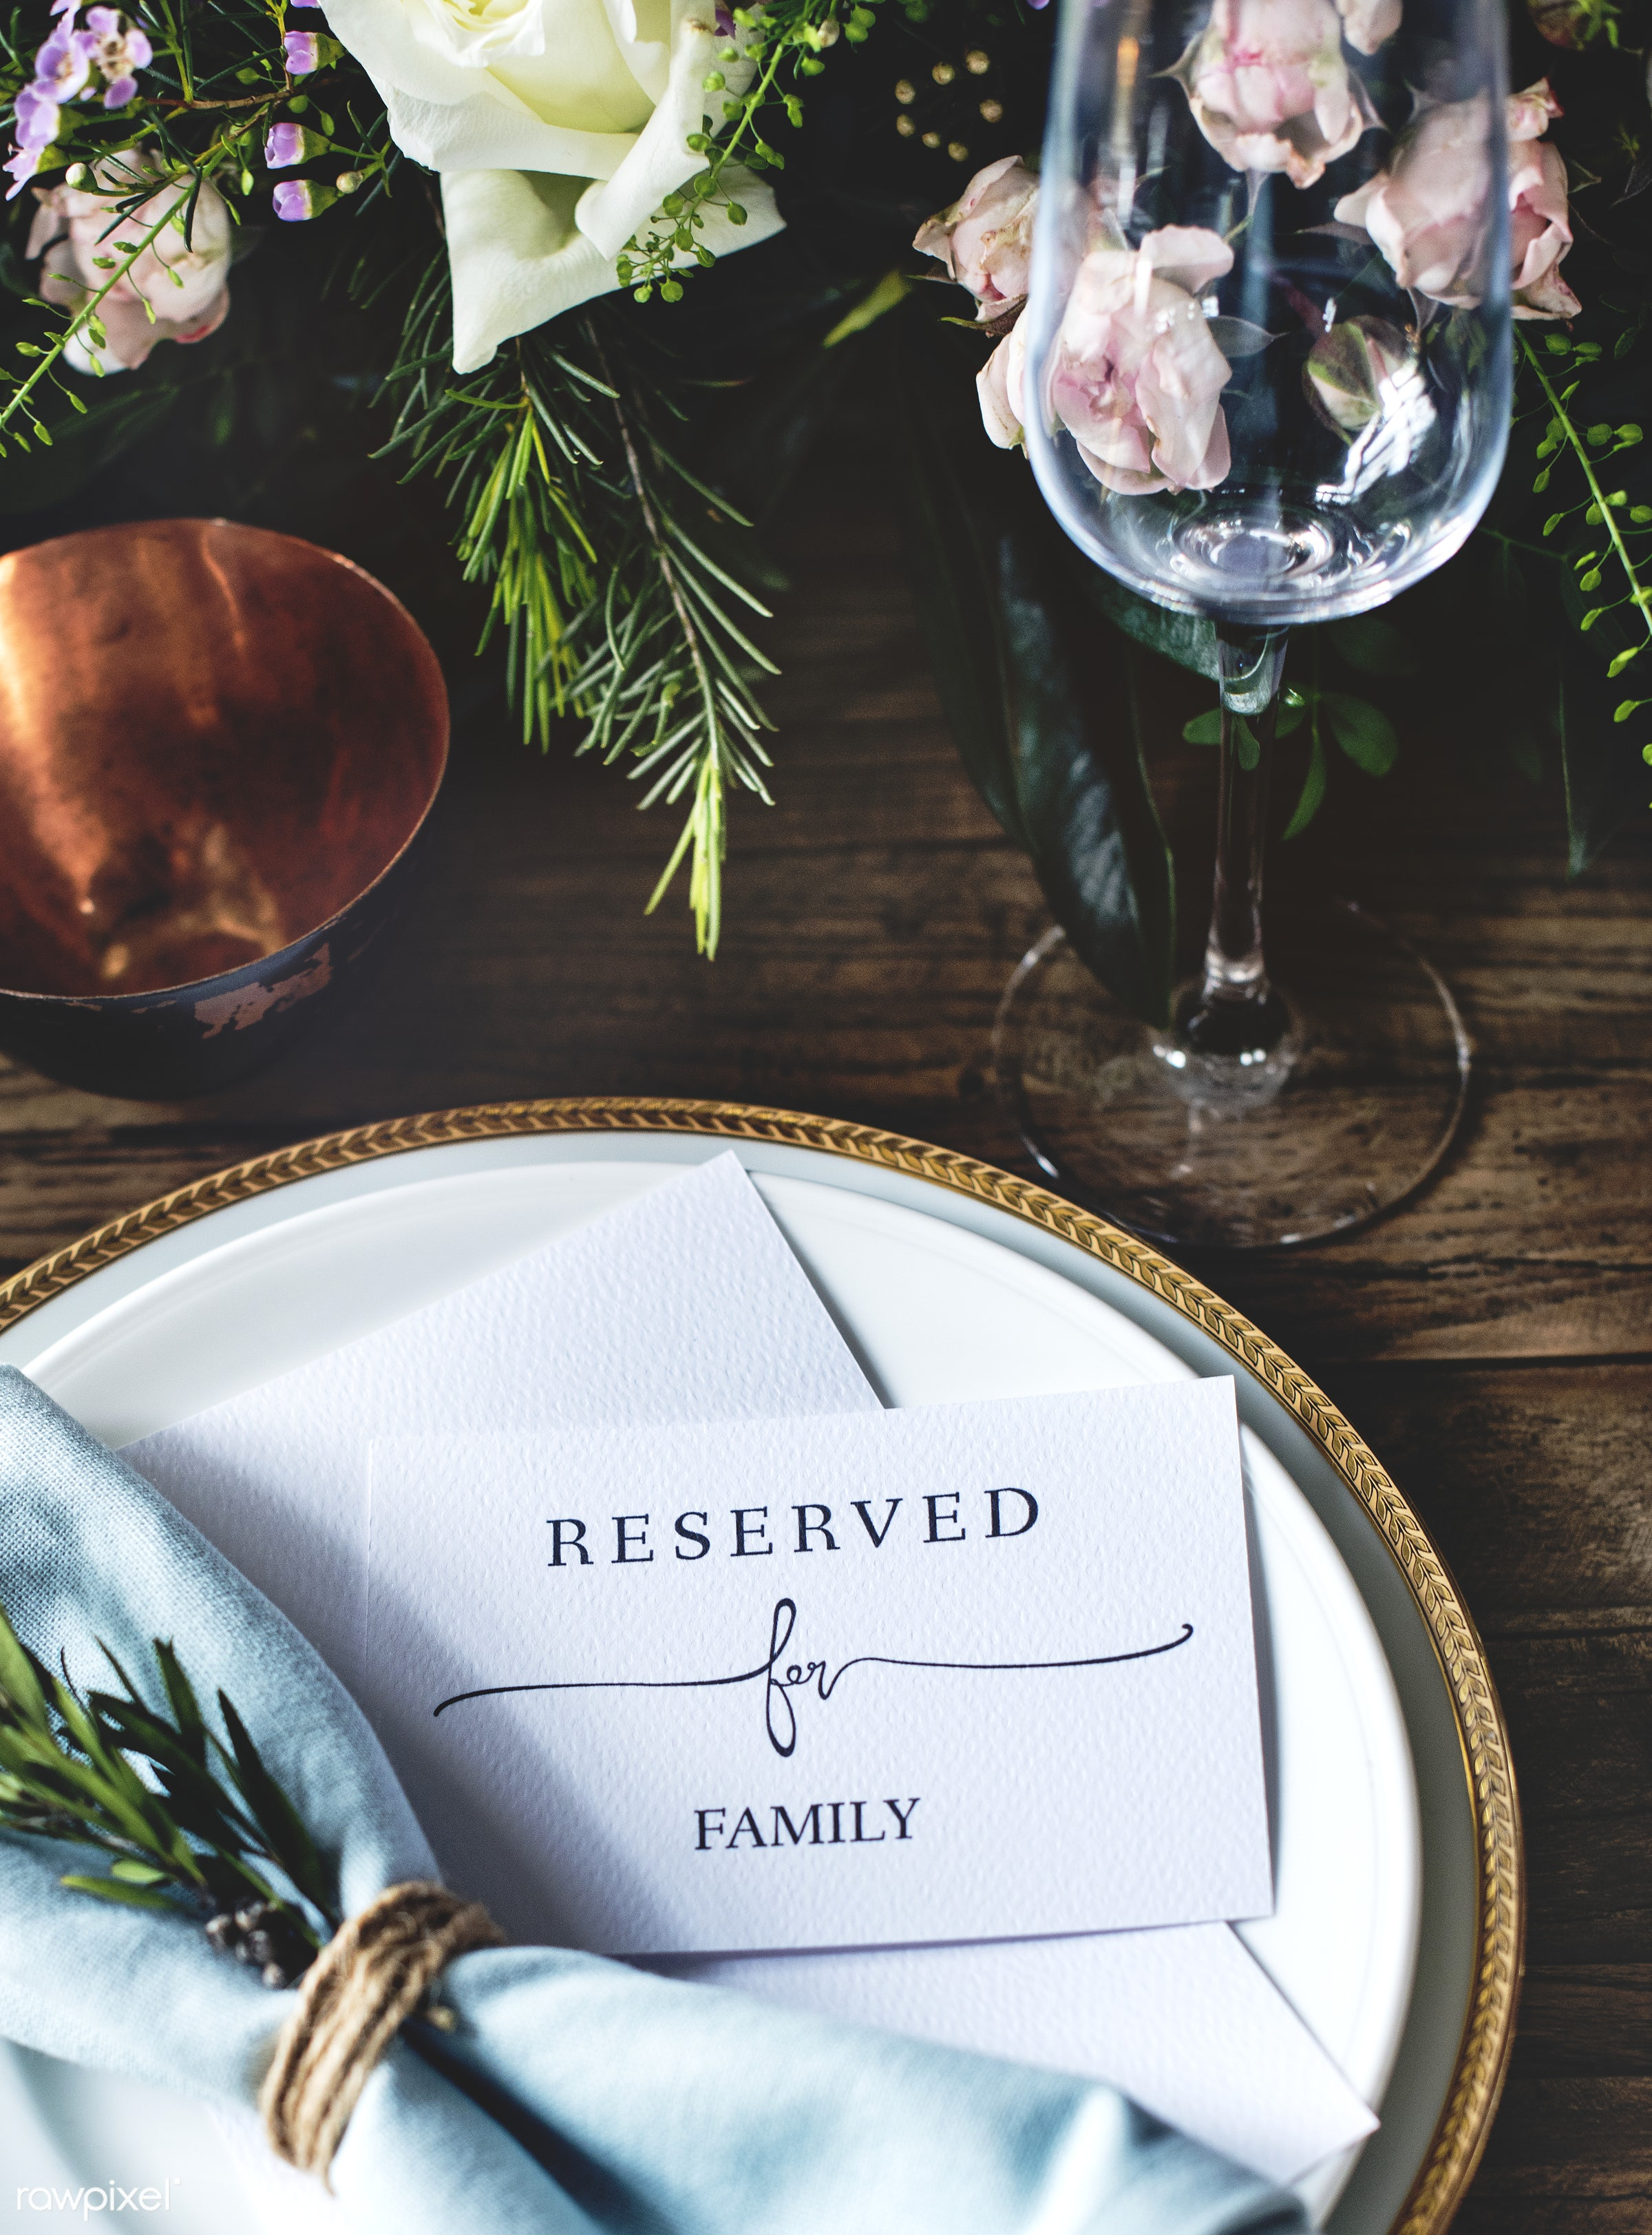 Elegant Restaurant Table Setting Service for Reception with Reserved Card - reserved, arrangement, banquet, card, catering,...